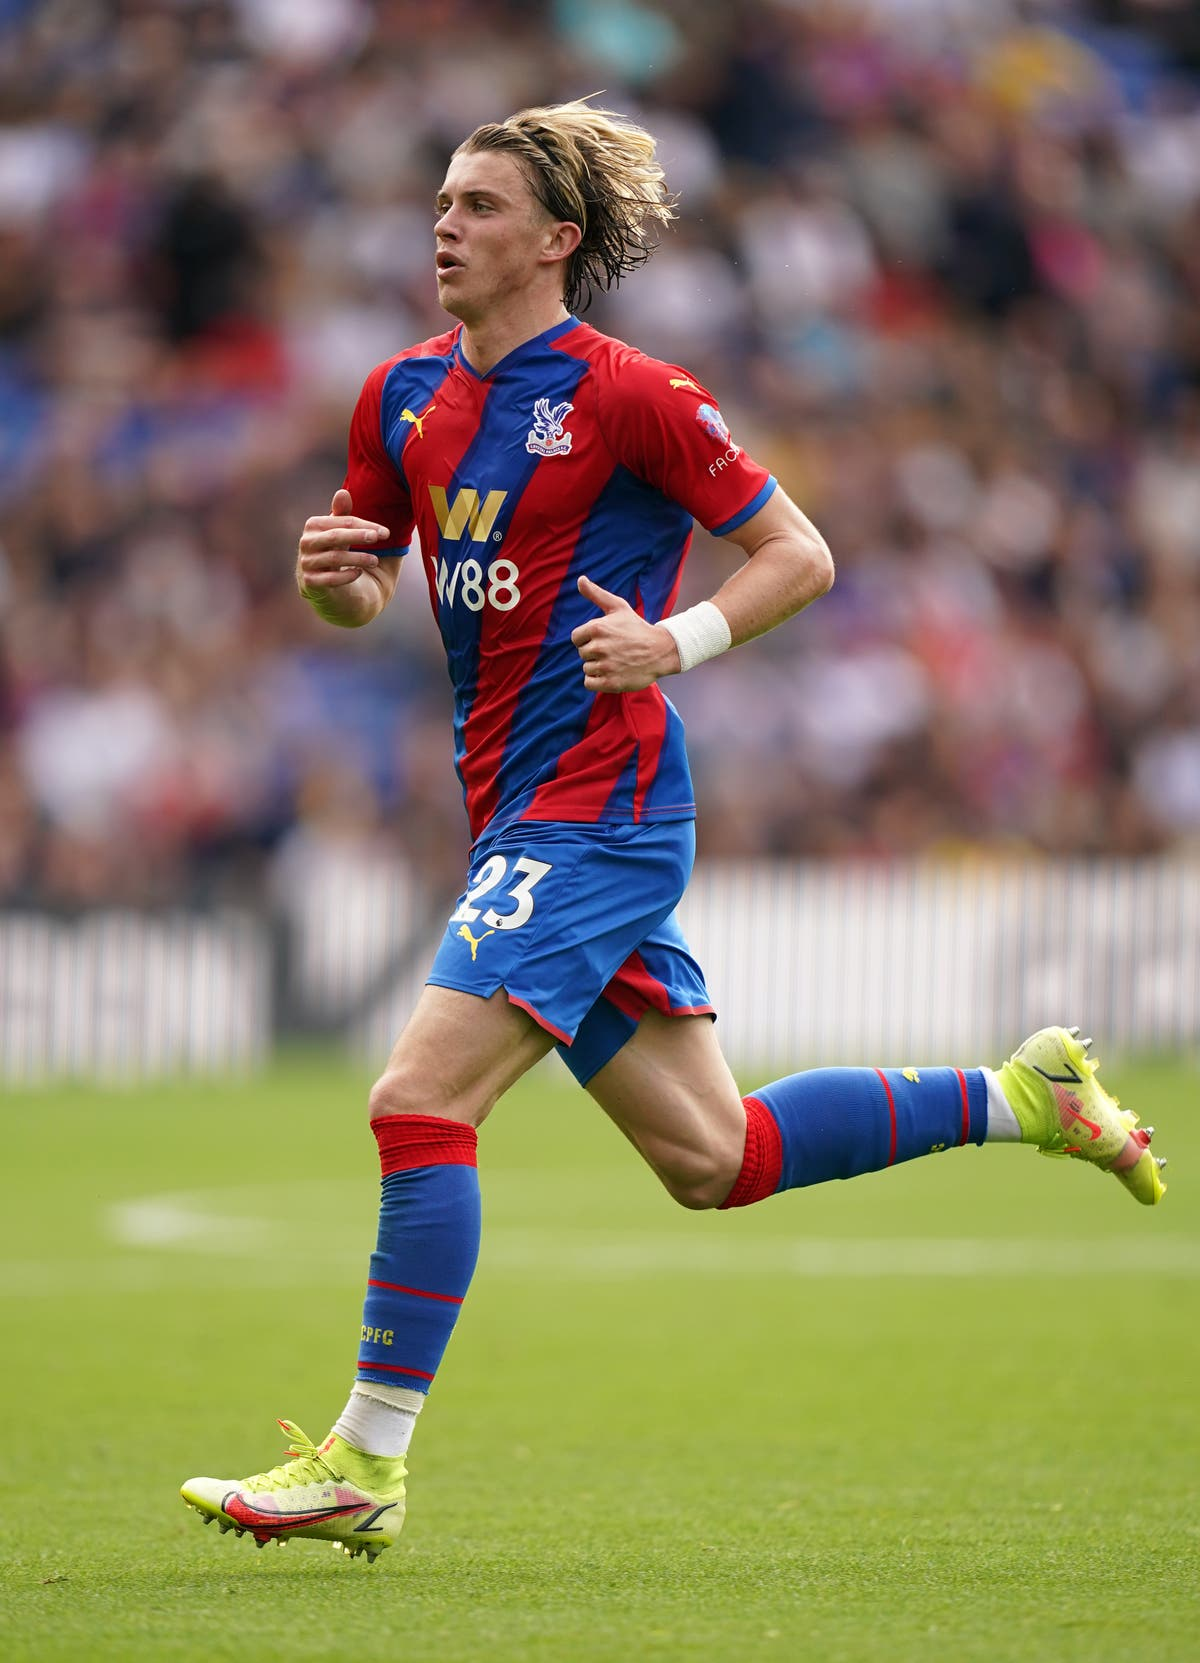 Conor Gallagher not quite ready for England call-up – Crystal Palace boss Vieira